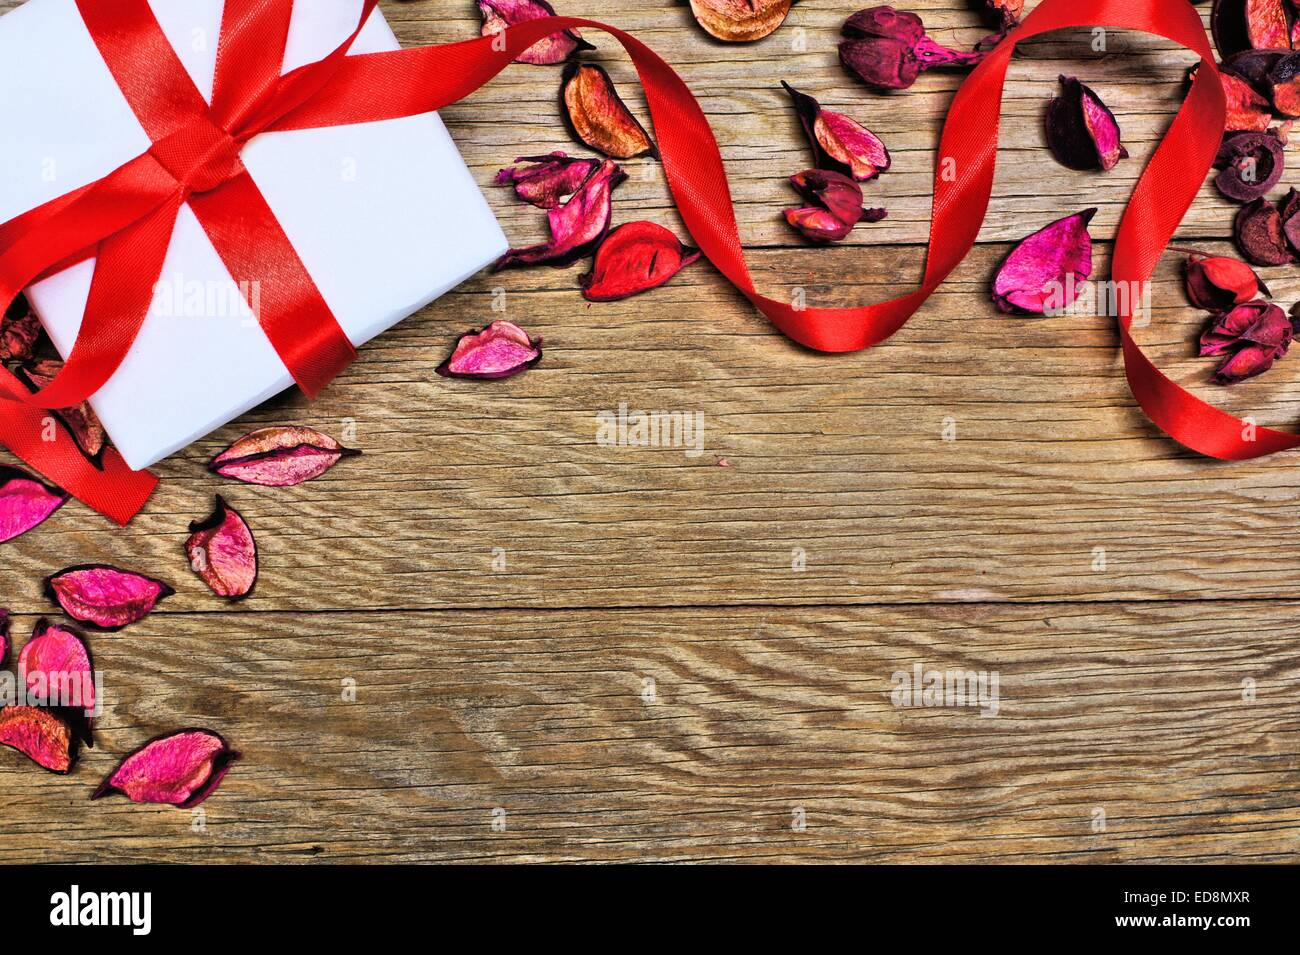 Gift box with scattered petals and ribbon on wood background Stock Photo